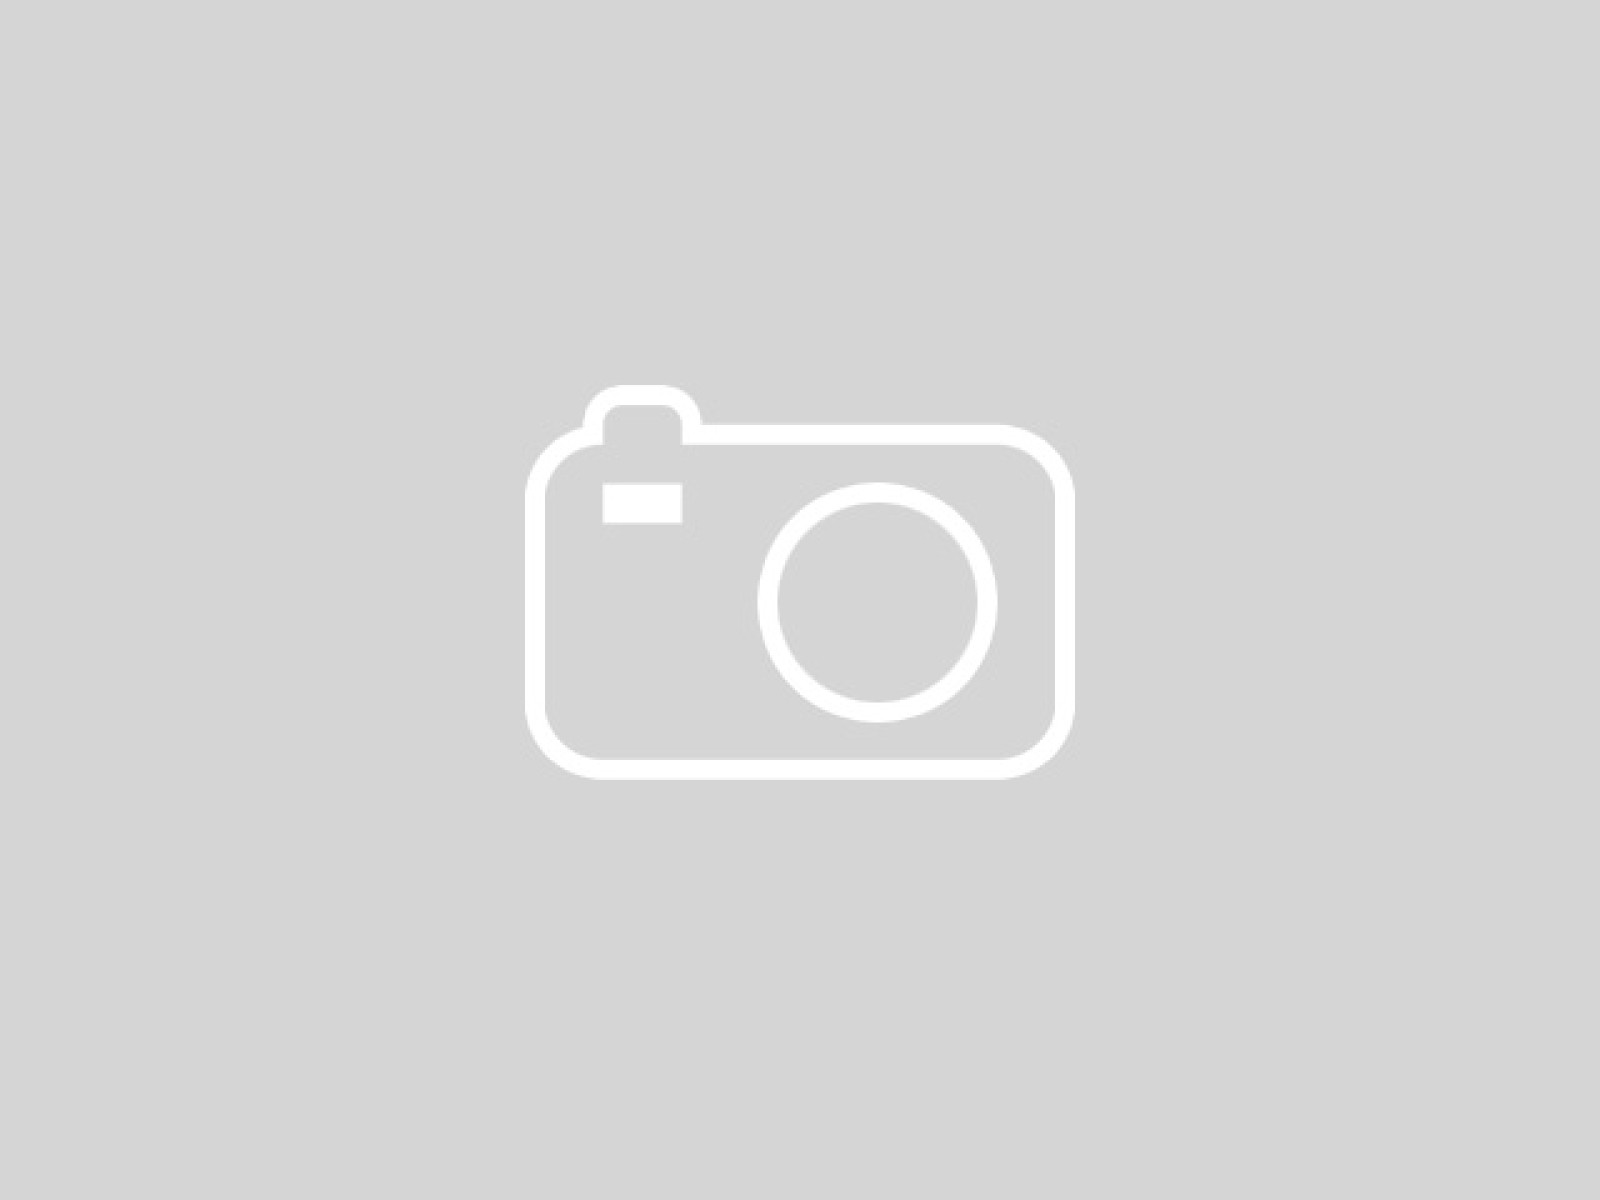 Certified Pre Owned 2018 Mercedes Benz Gle Amg Gle 63 S 4matic Suv Suv In Newport Beach Mp45840 Fletcher Jones Motorcars